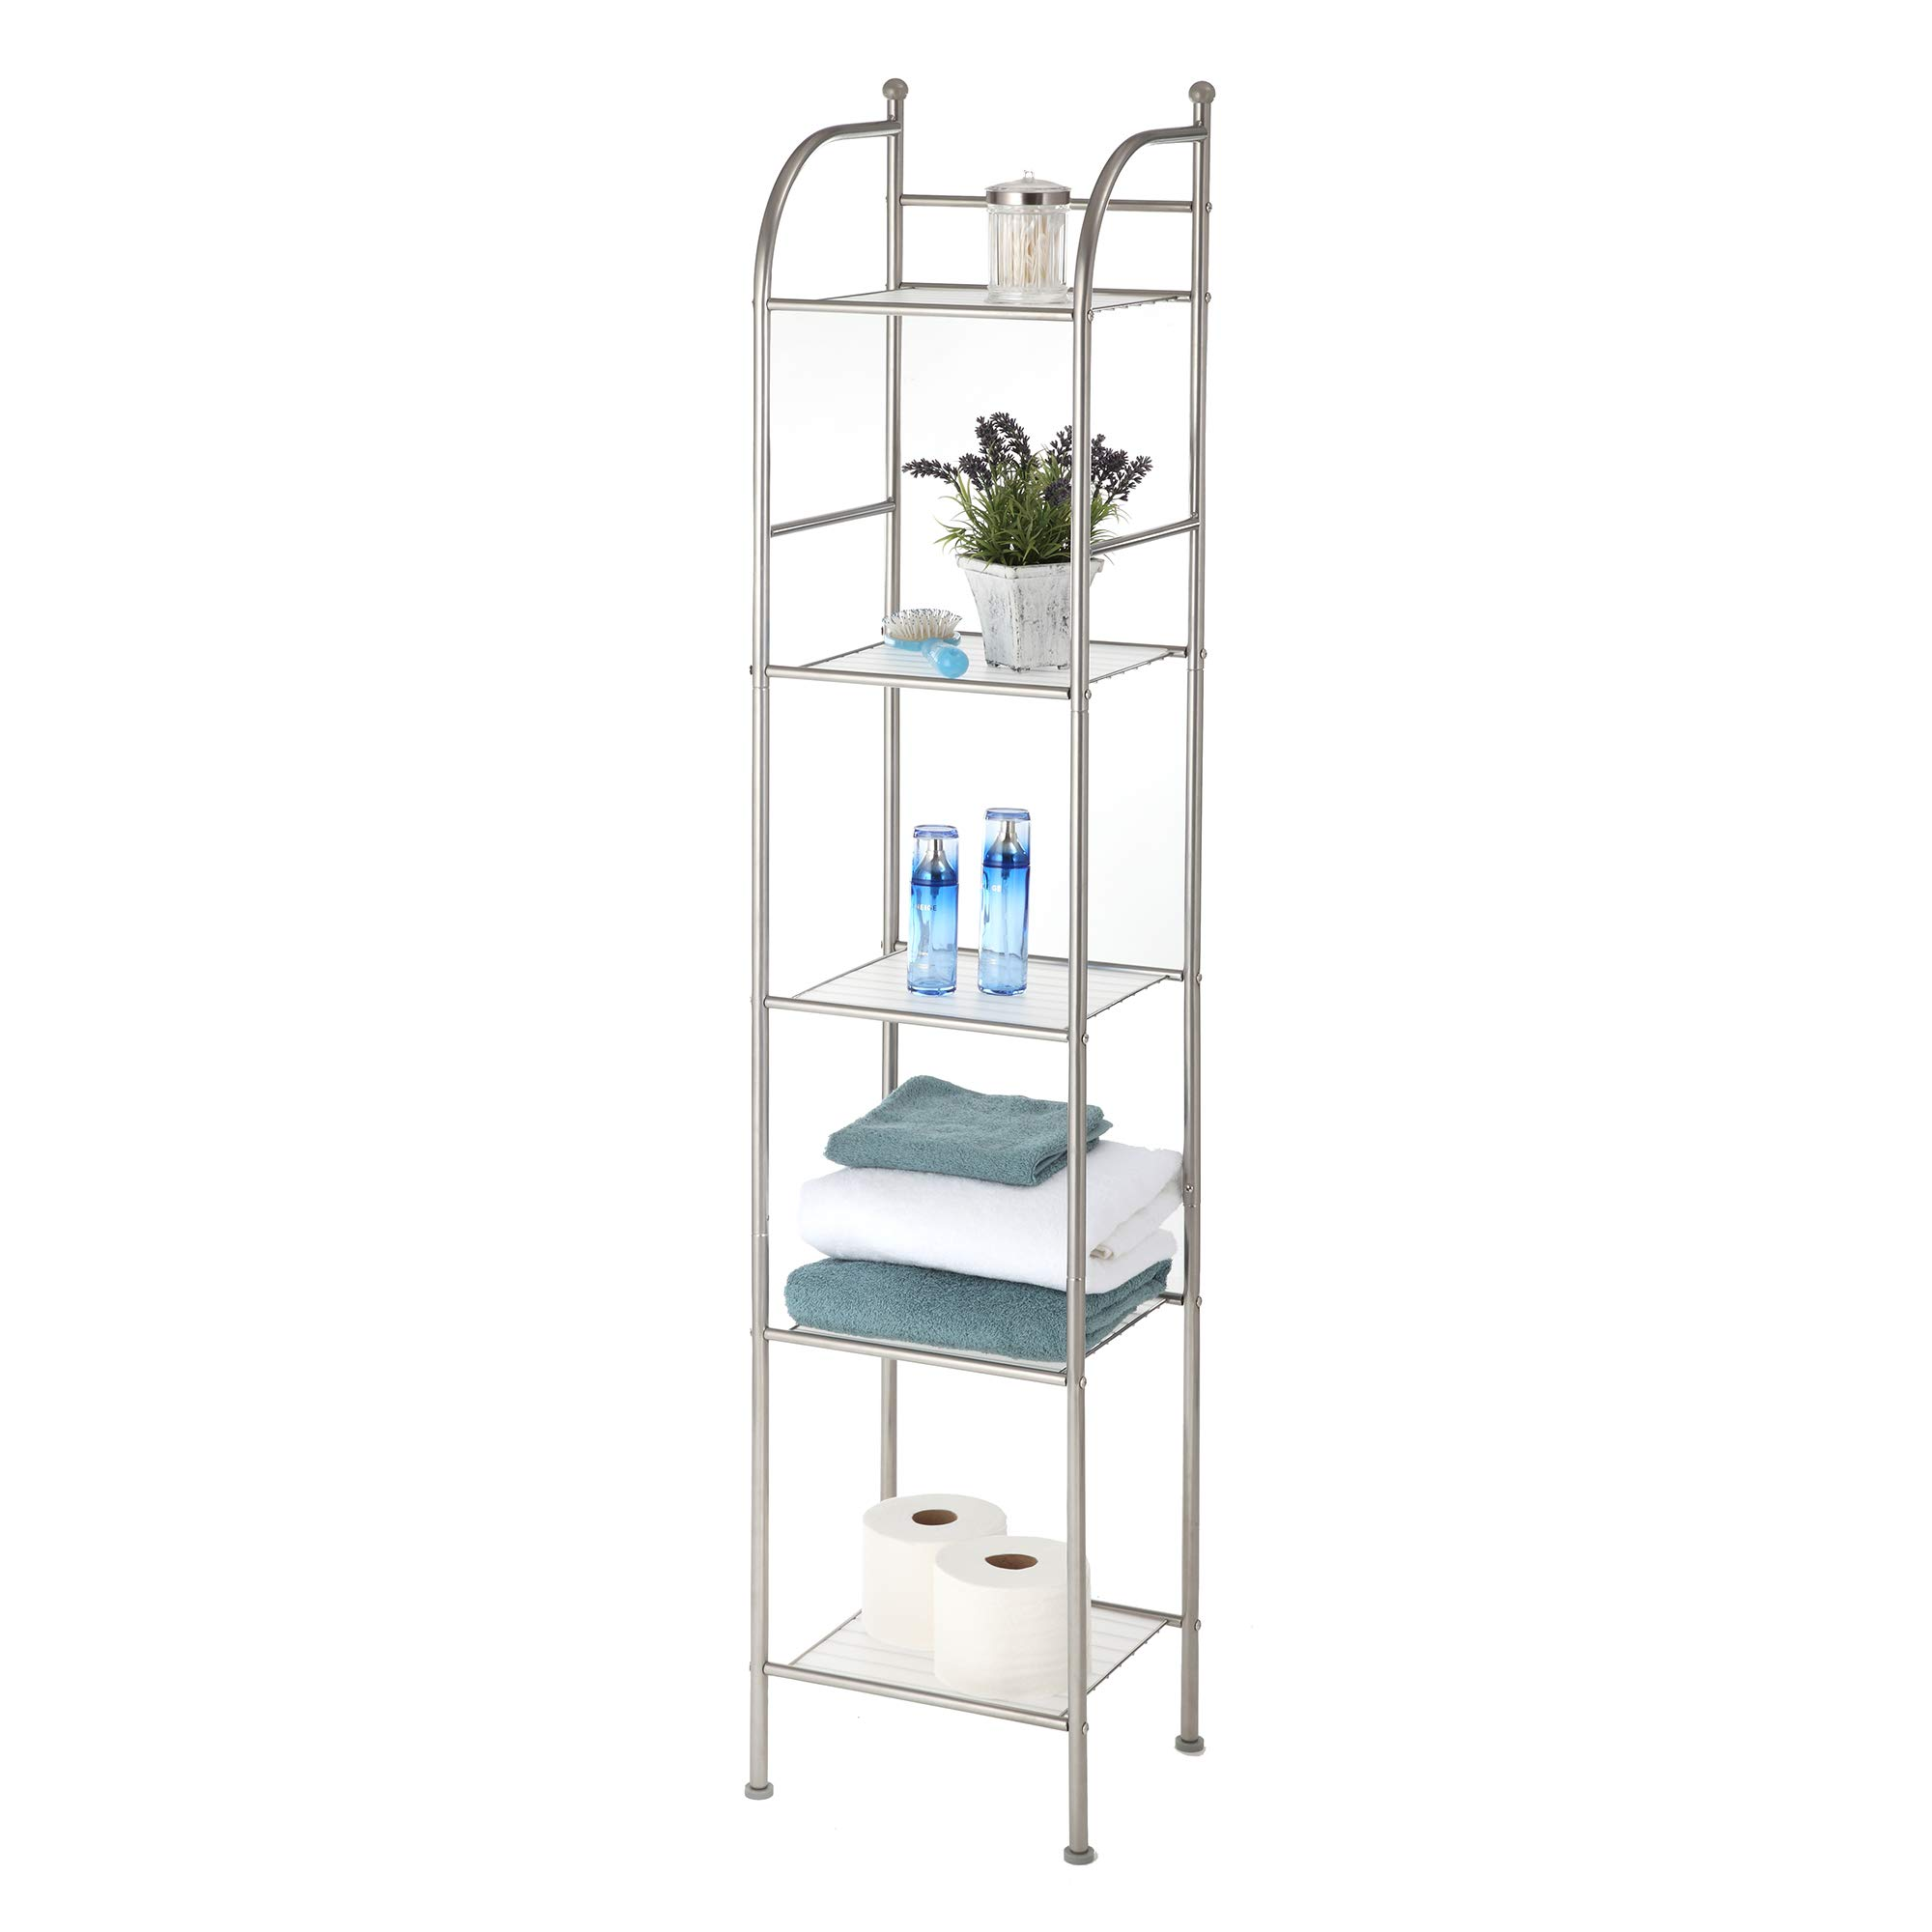 Home Zone 5-Tier Modern Style Shelving Bathroom Space Saver, Satin Nickel Finish, Shelf Liner Included